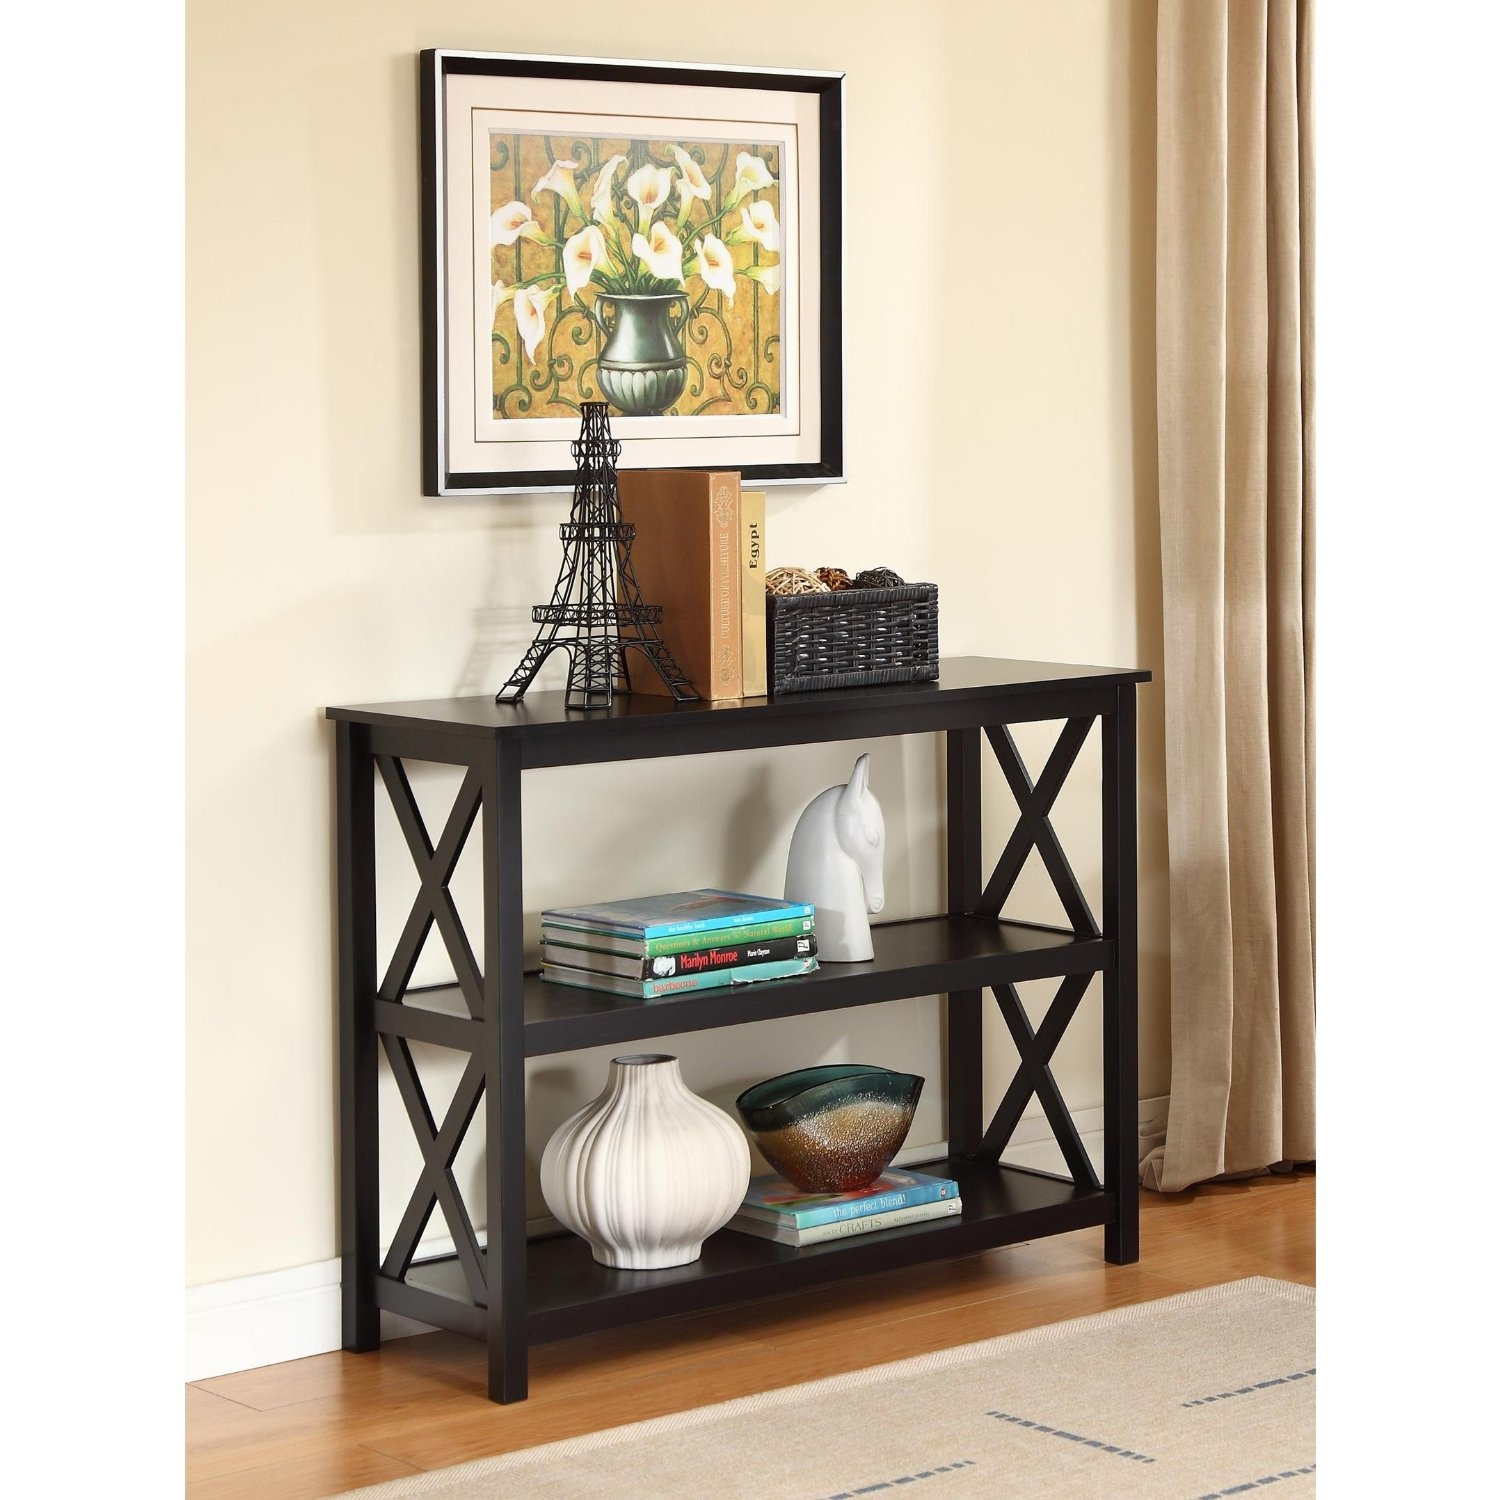 3 Tier Black Sofa Table Bookcase Living Room Shelves